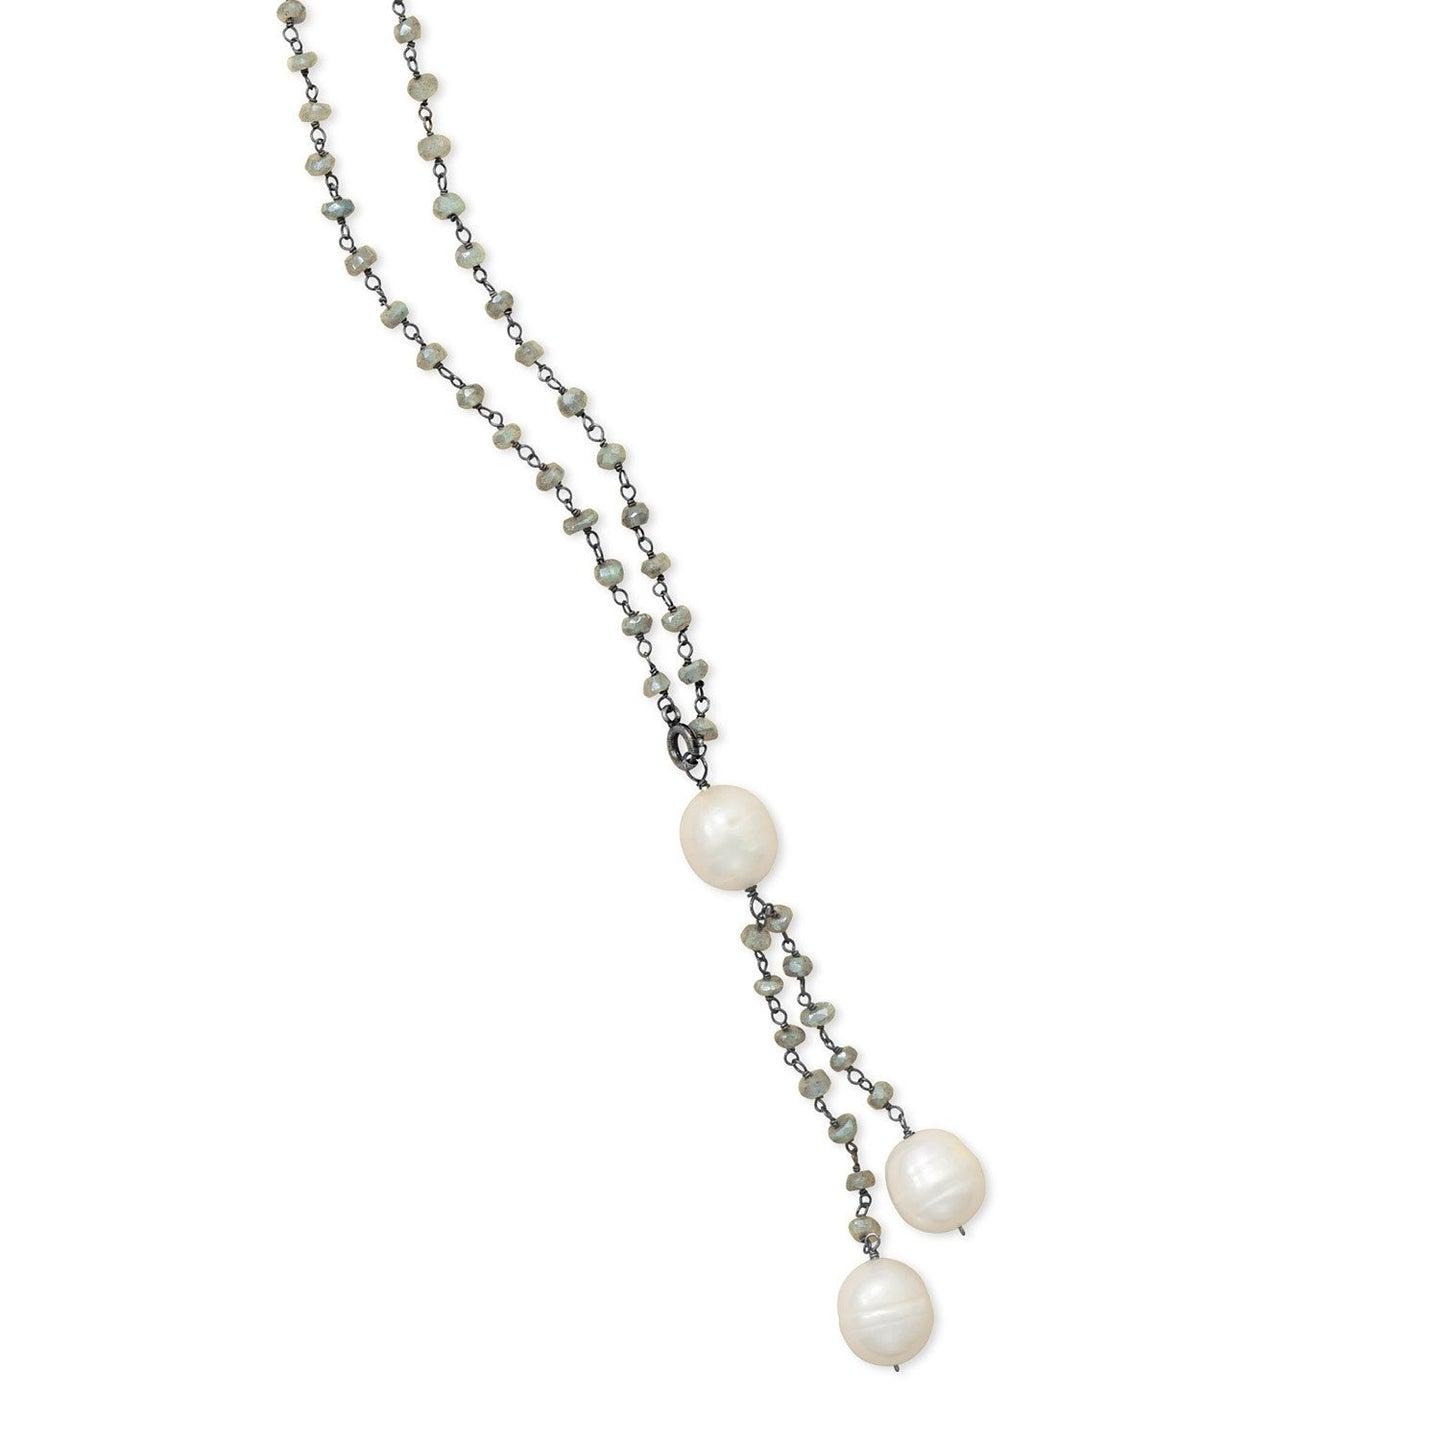 Labradorite Necklace with Cultured Freshwater Pearl Drop - the-southern-magnolia-too